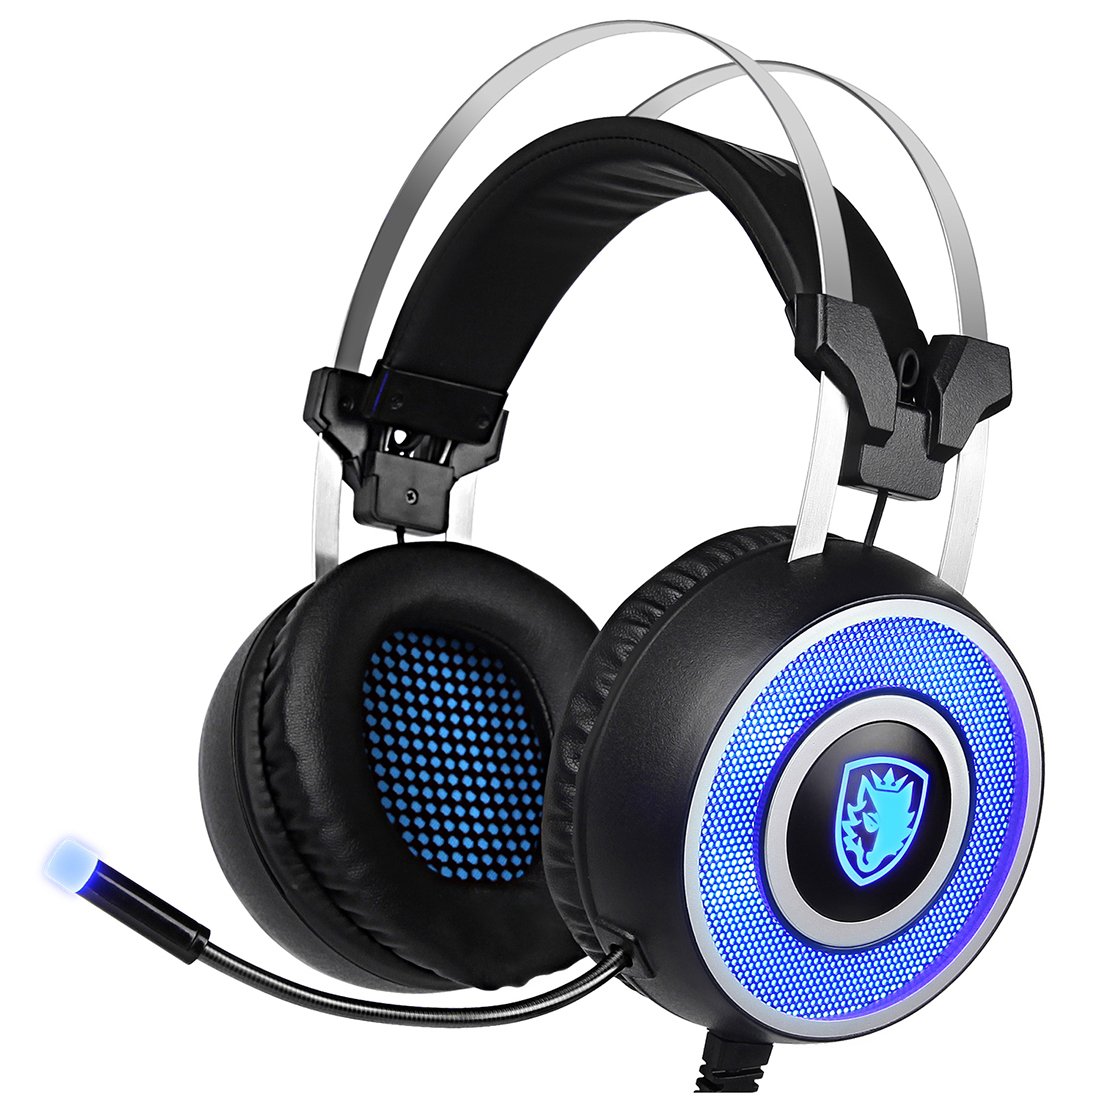 SADES A9 Gaming Headset,USB Over Ear Gaming Headphones with miniphone ,7 colors Breathing LED Lighting for PC(Black and Blue)